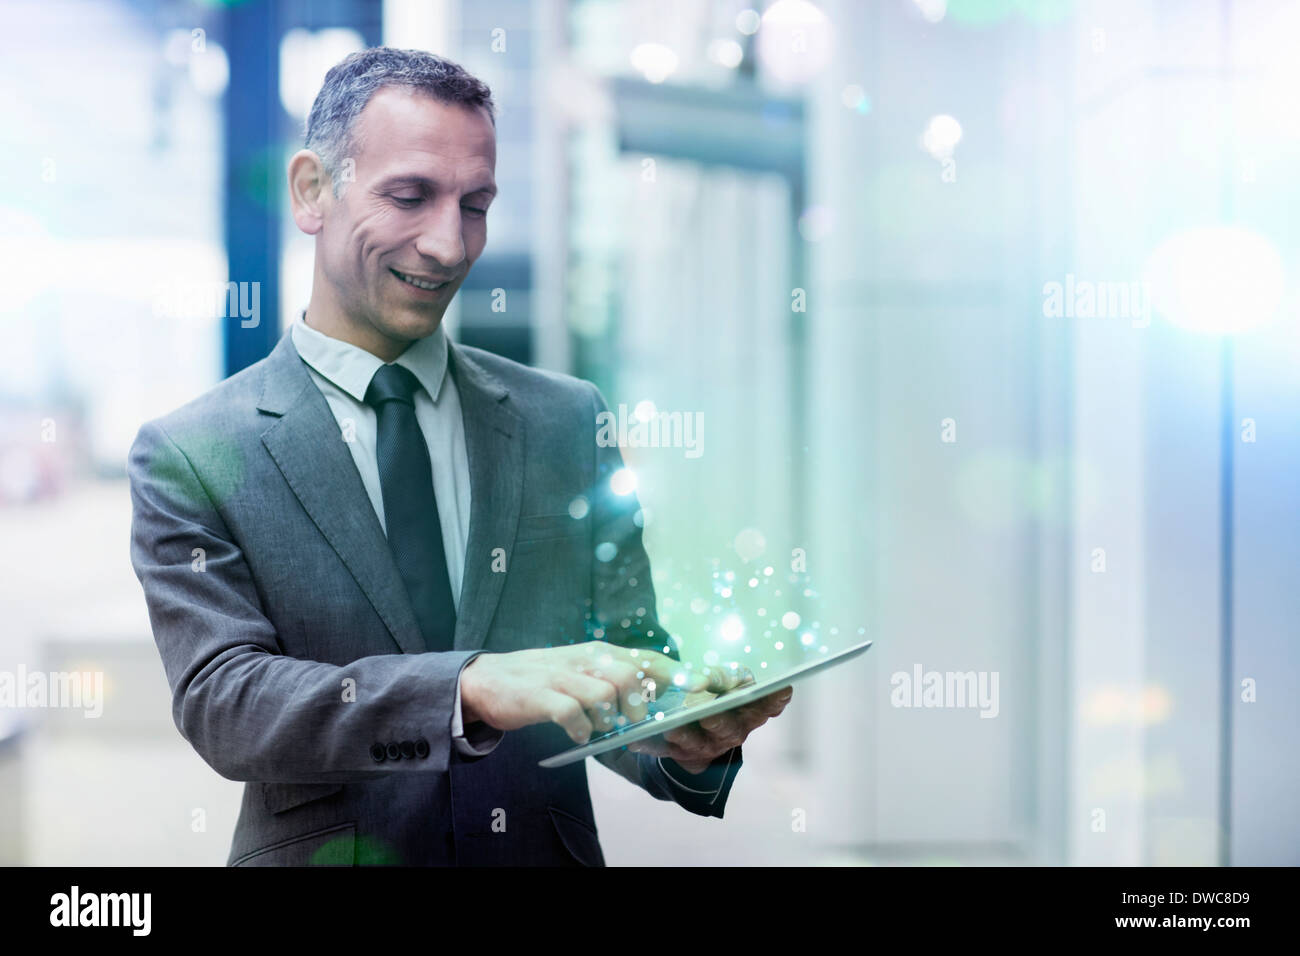 Businessman using digital tablet with glowing lights coming out of it - Stock Image